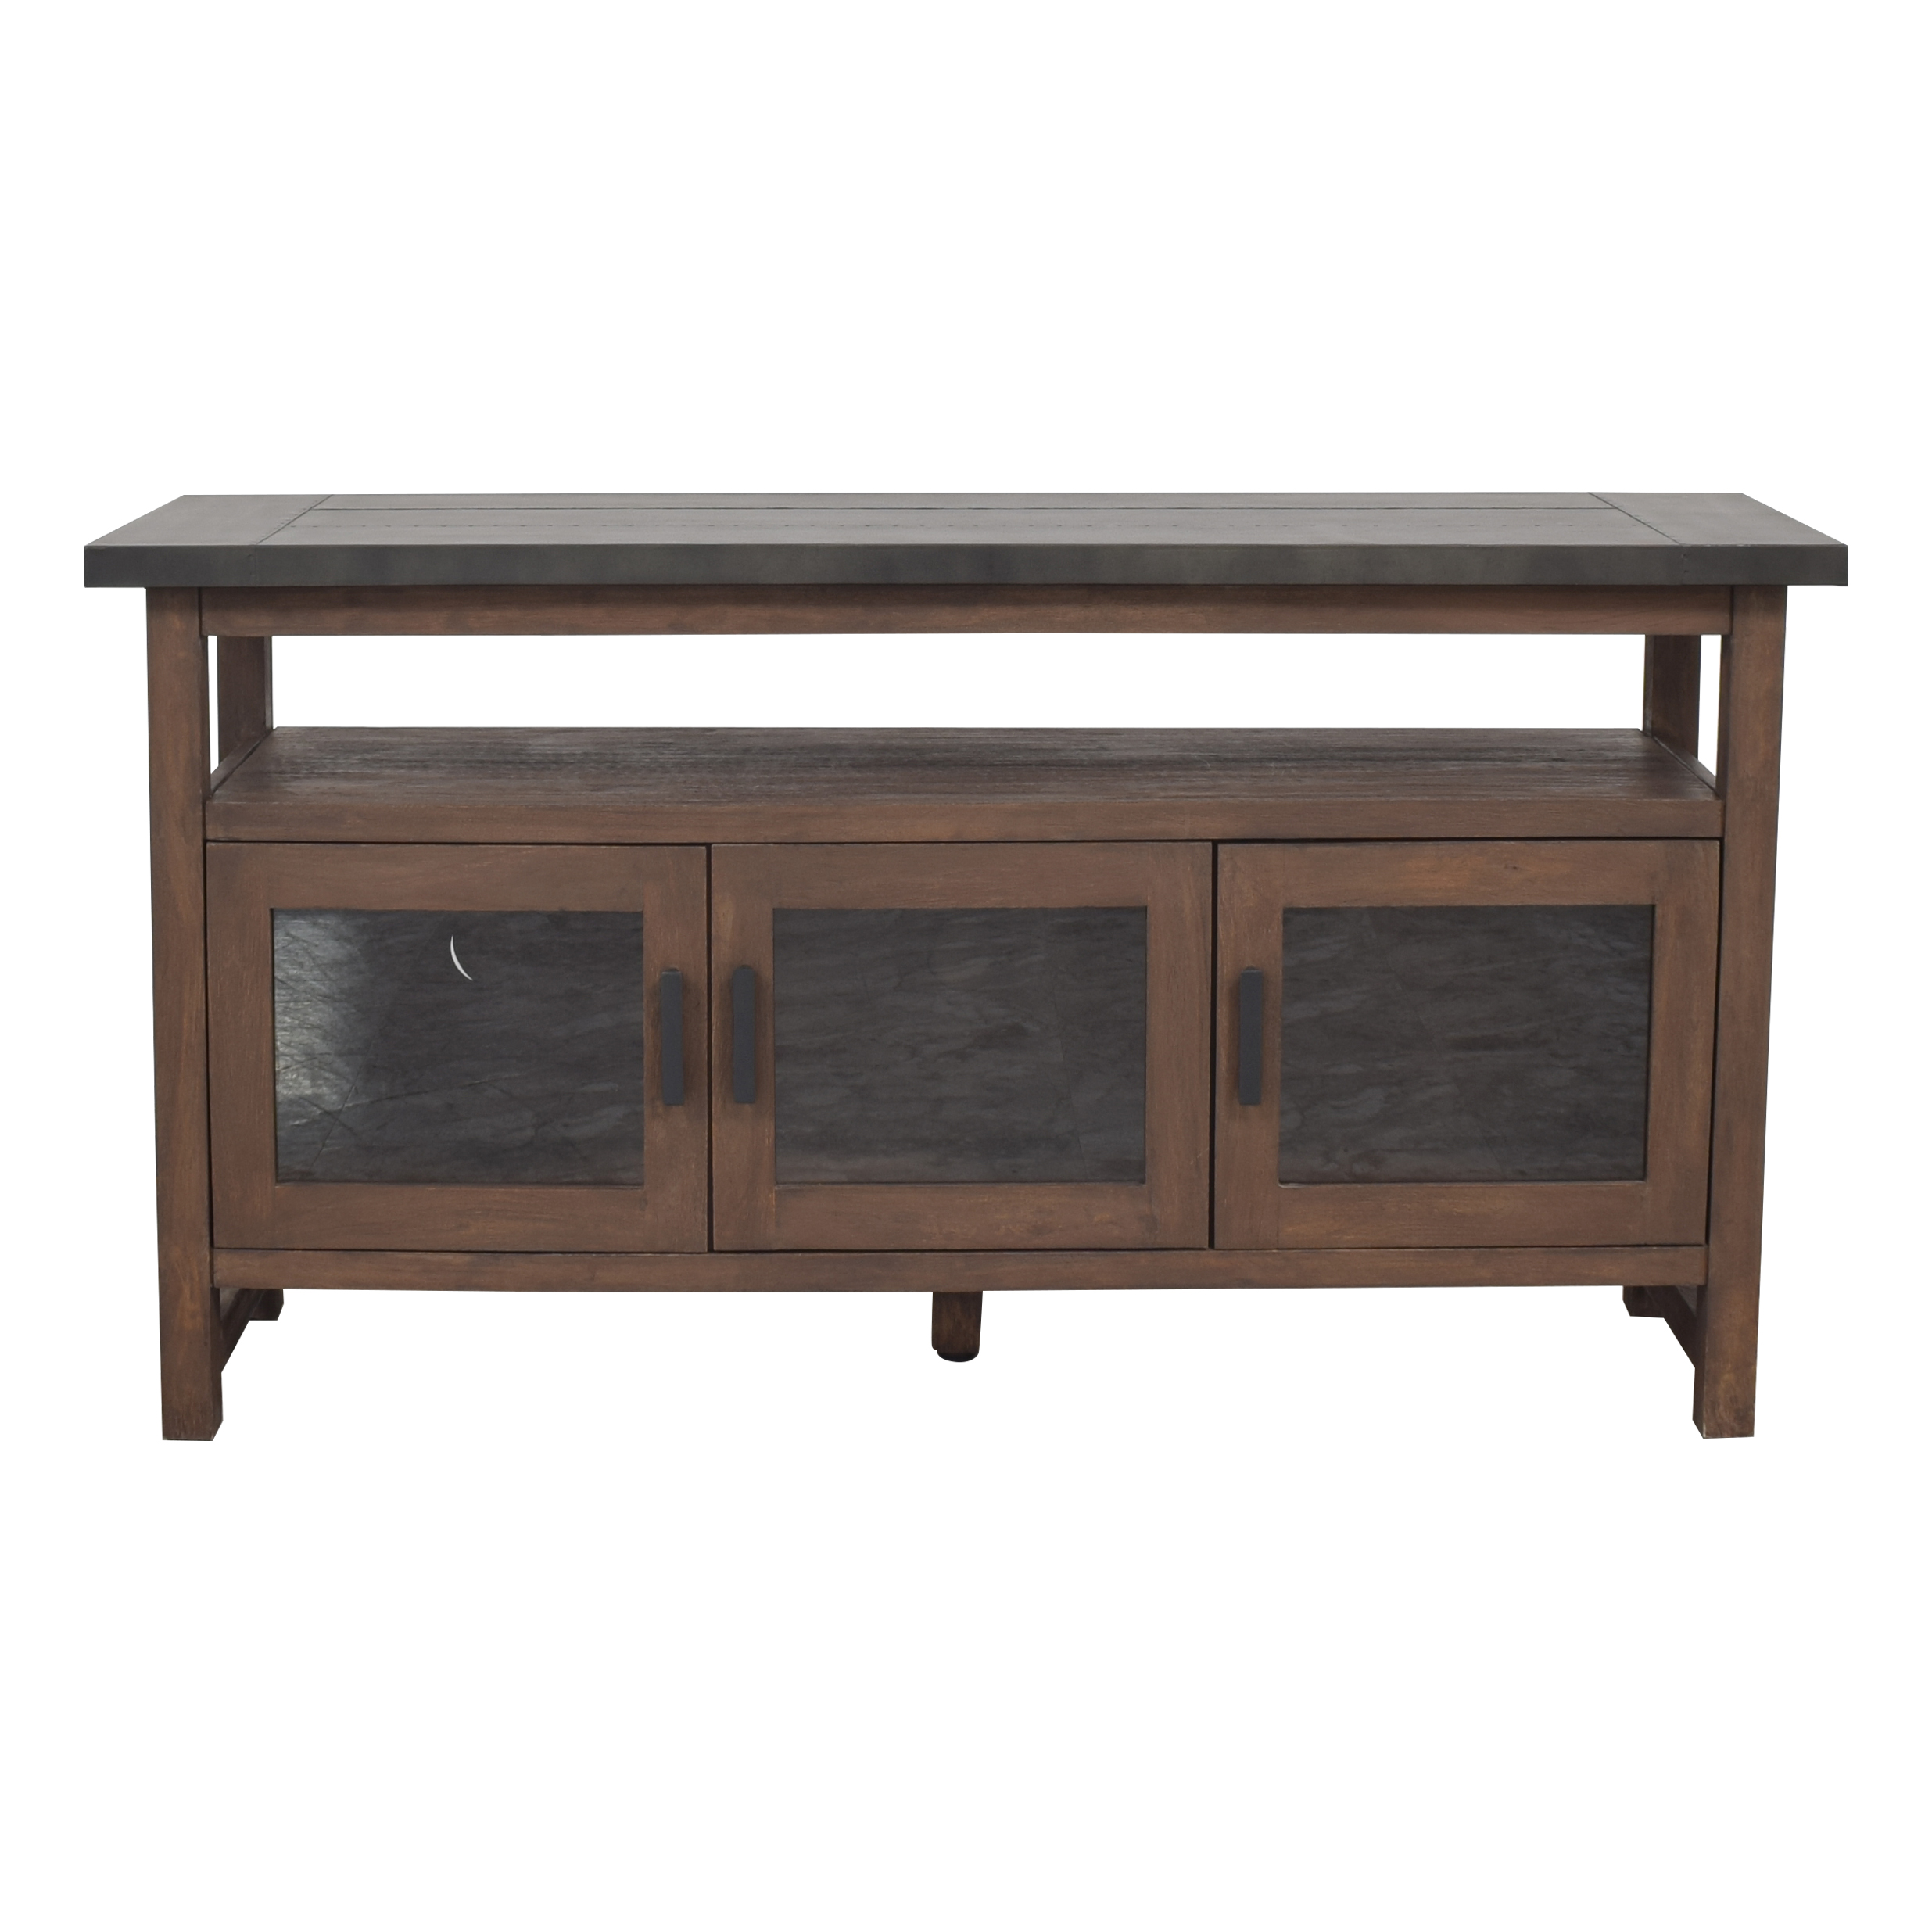 Crate & Barrel Crate & Barrel Galvin Sideboard on sale